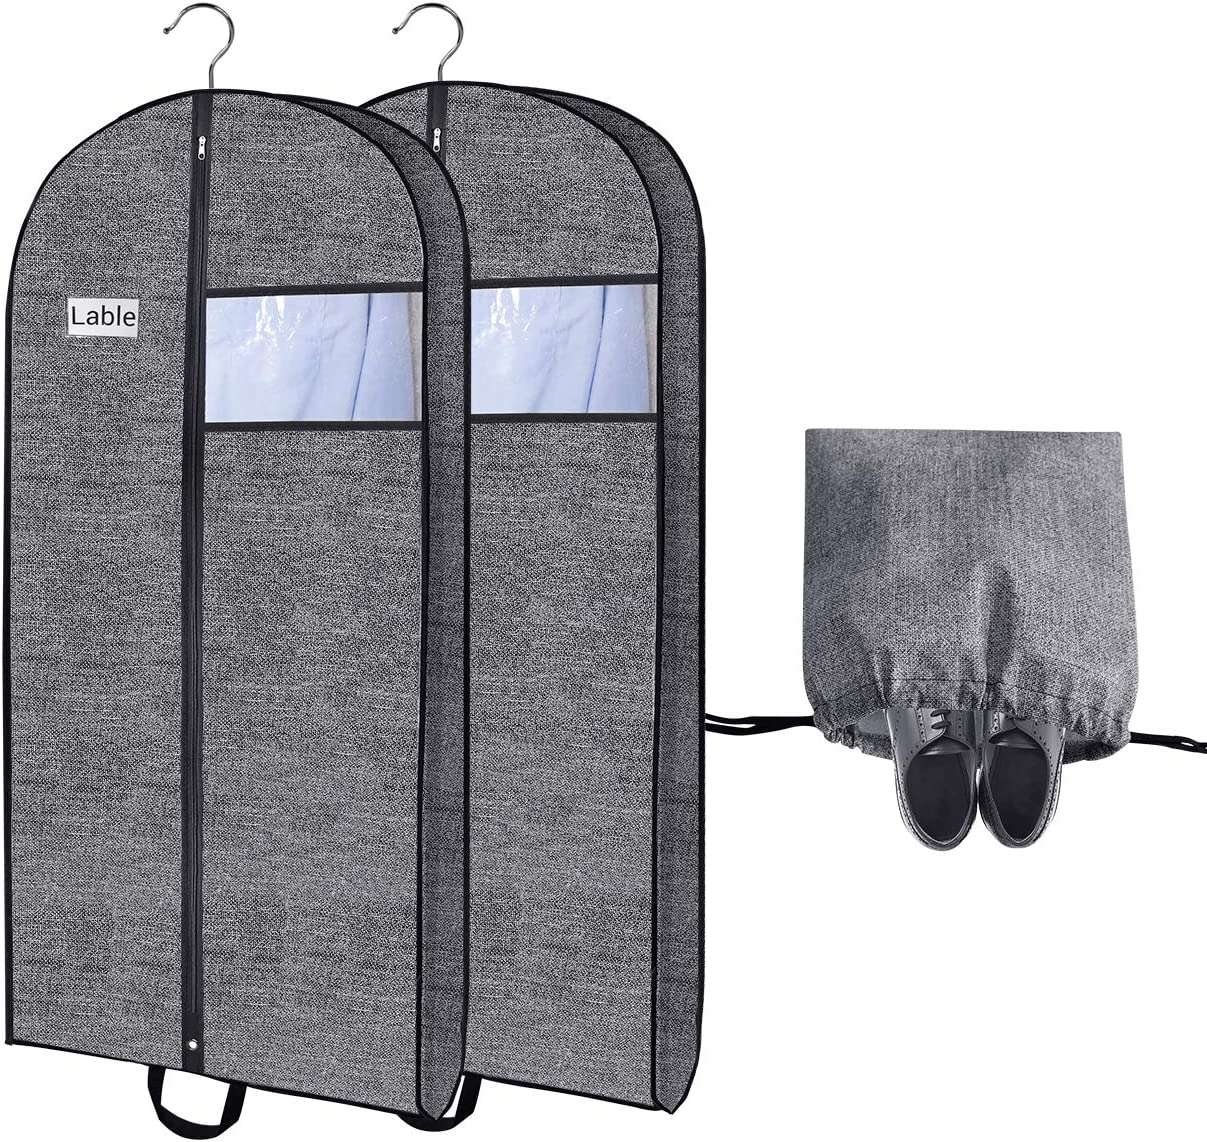 Garment Bag for Closet Storage and Travel,Hold More Clothes Garment Cover,Easily Carrying Full Zipper with Clear Window and ID Card Holder for Suits, Gowns, Dresses,Dance Costumes-2pack-Bonus Shoe Bag